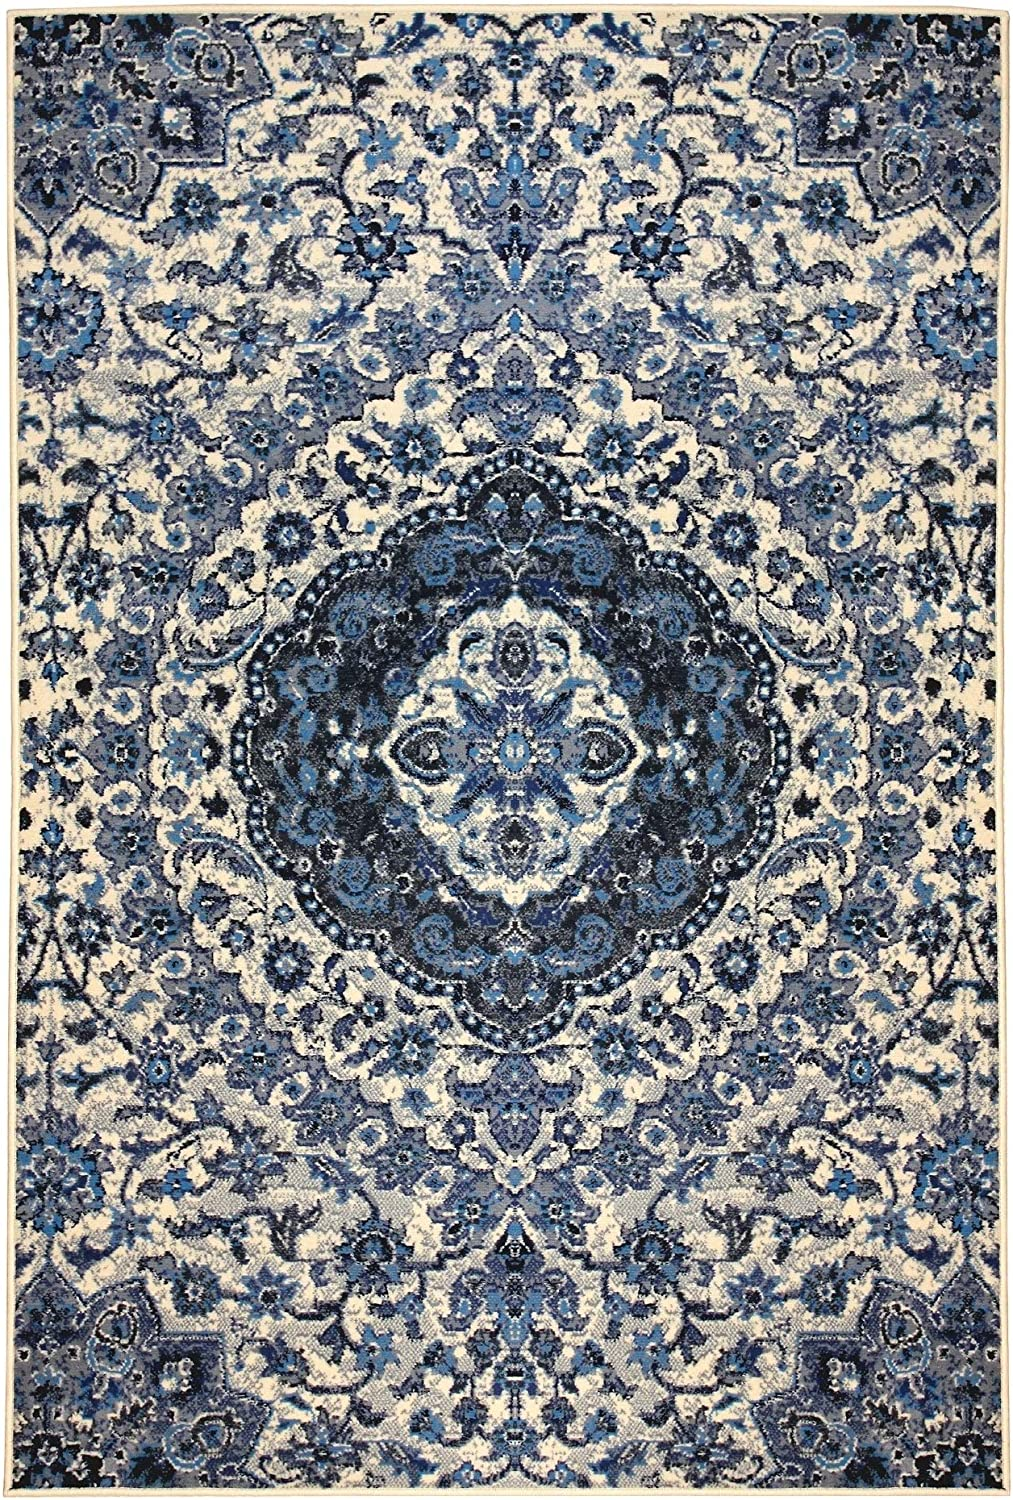 Home Blue 5'x8' Rug - New Free Shipping OFFer 5' Poly 8' Vintage Rectangle Medallion X